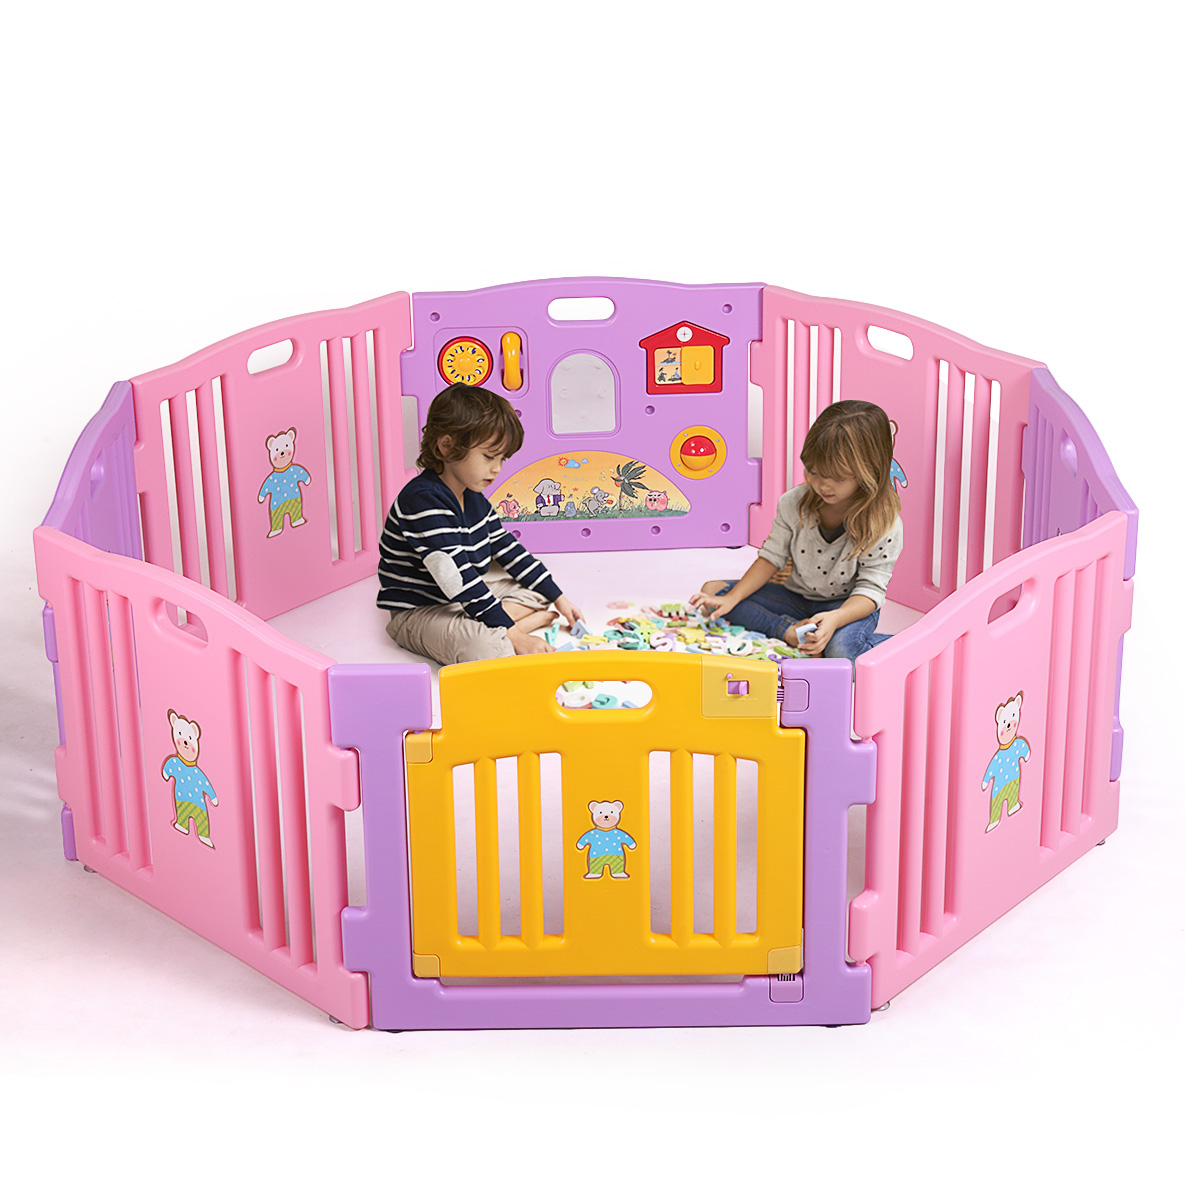 Jaxpety Baby Playpen 8 Panel Kids Safety Play Center Yard Home Indoor Outdoor Fence Pink